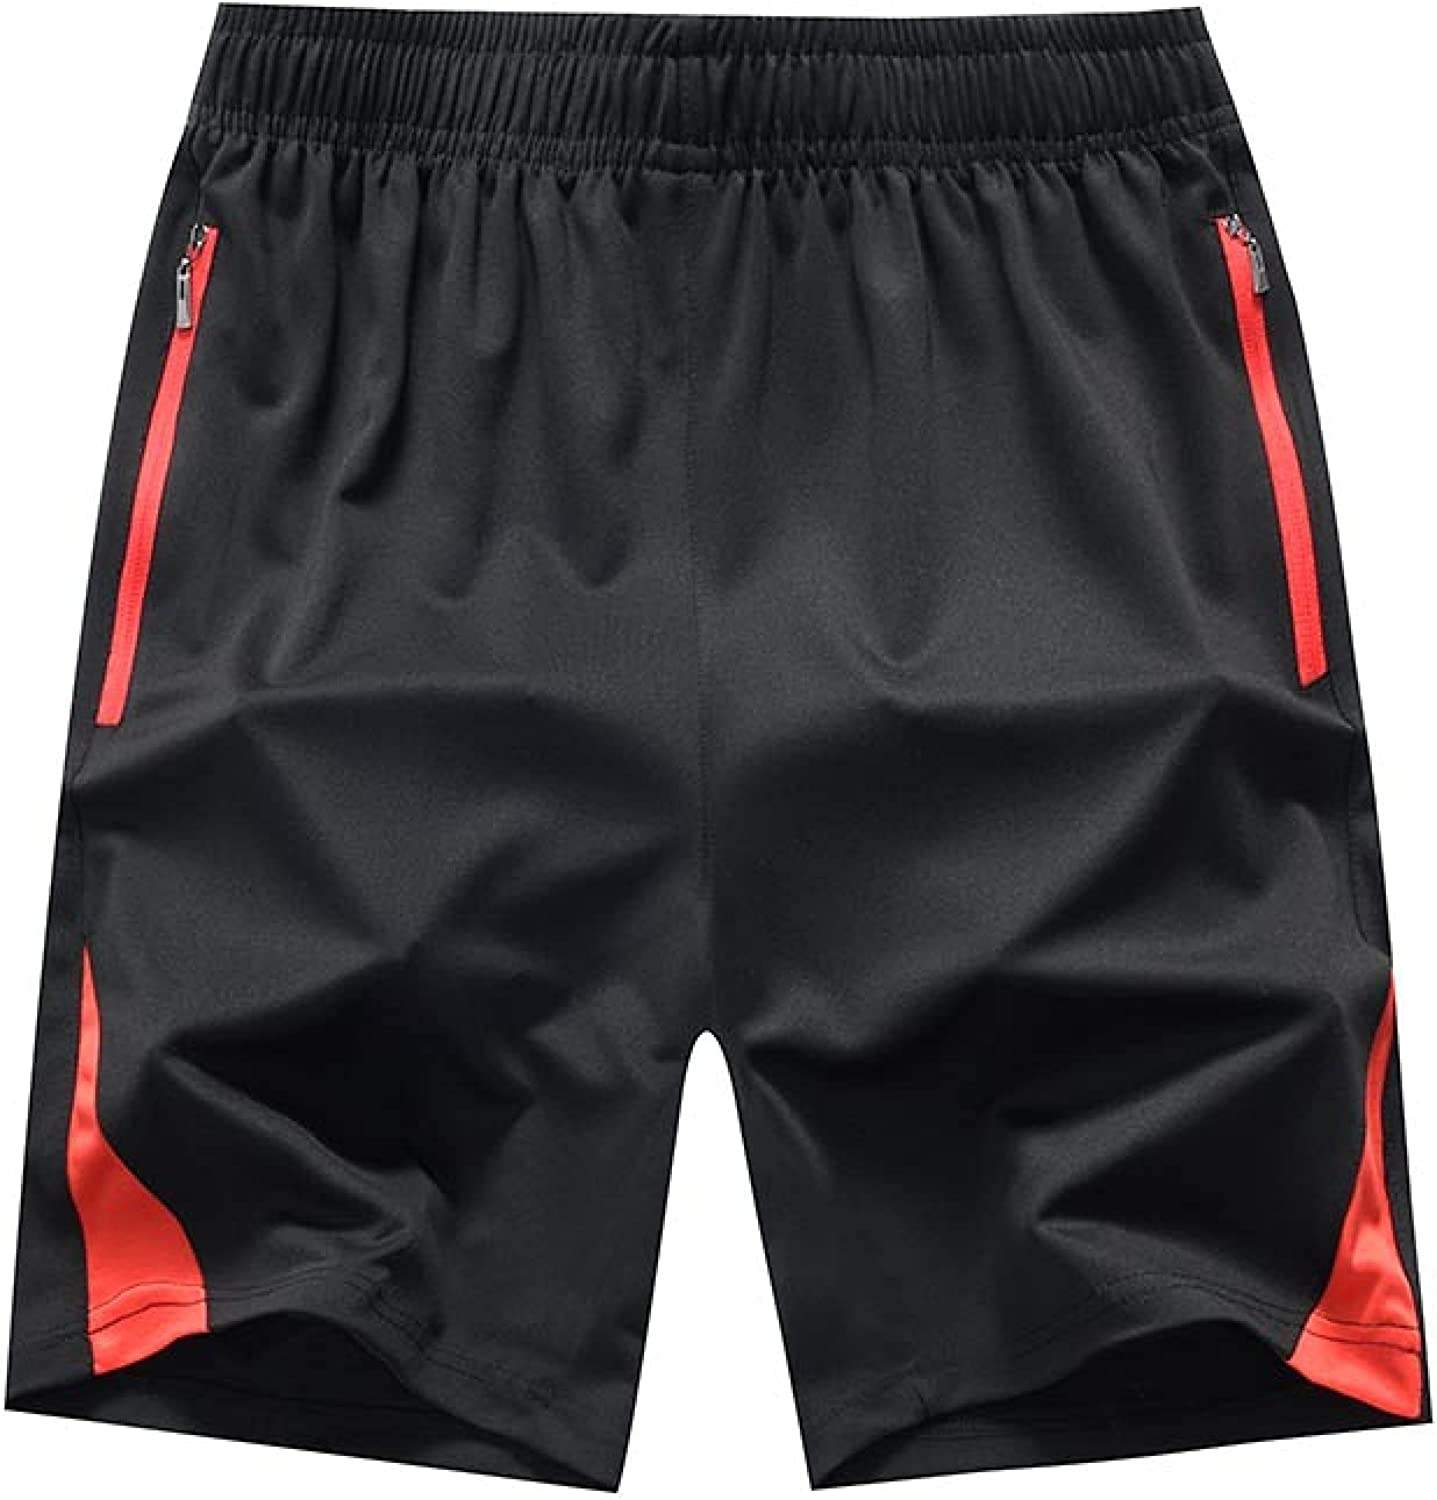 Wantess Men's Fitness Shorts Fashion Color Matching Loose Large Size Comfortable